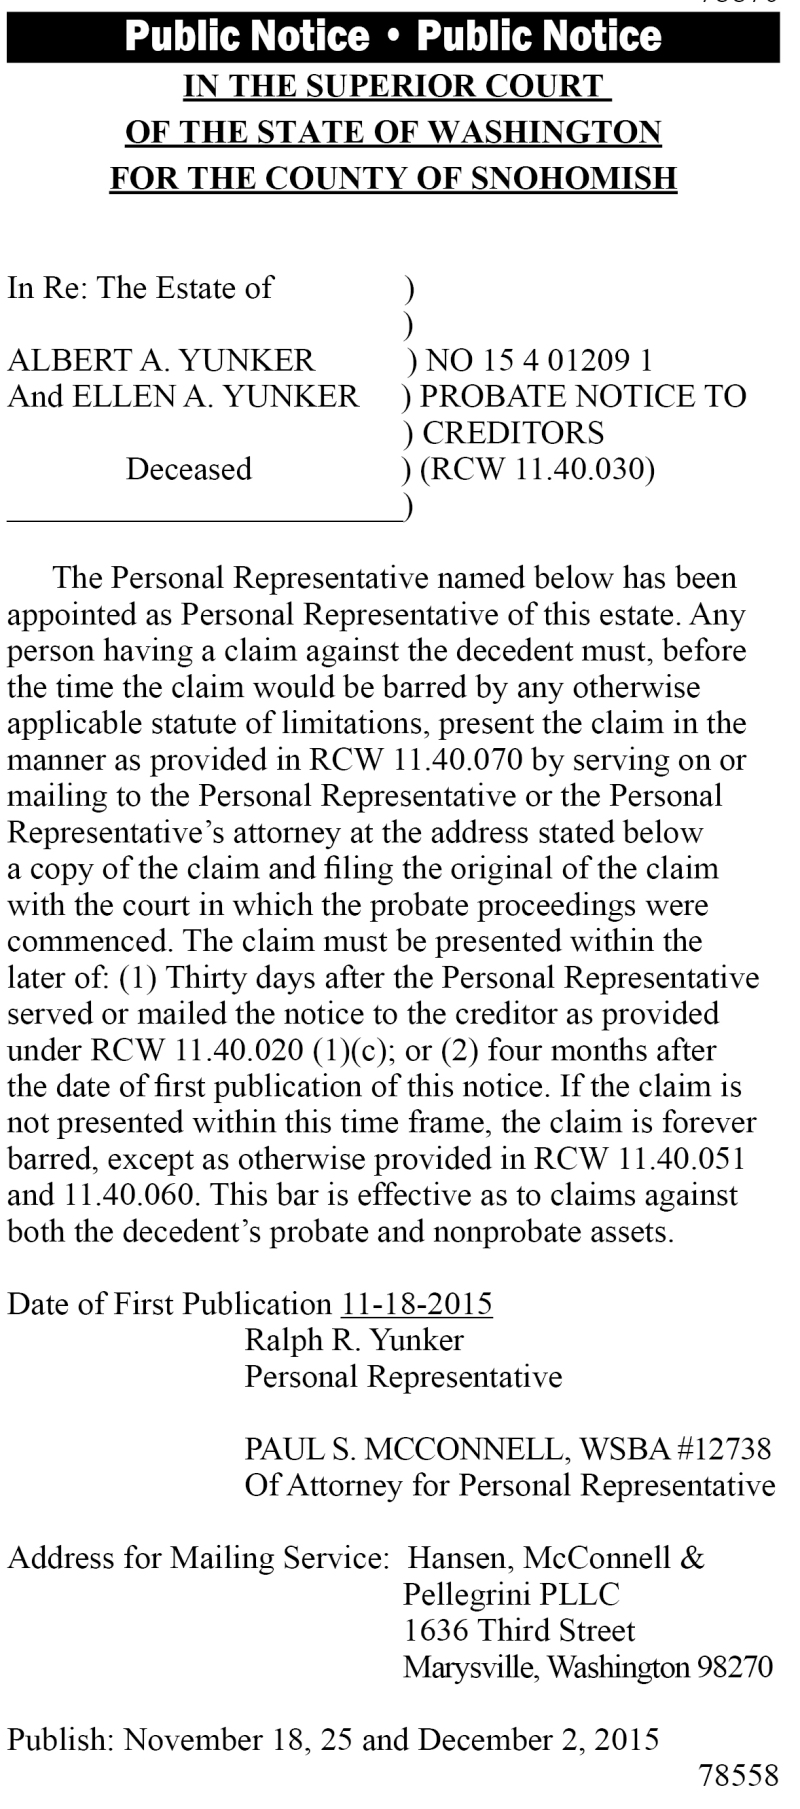 Legal 78558: Probate Notice to Creditors